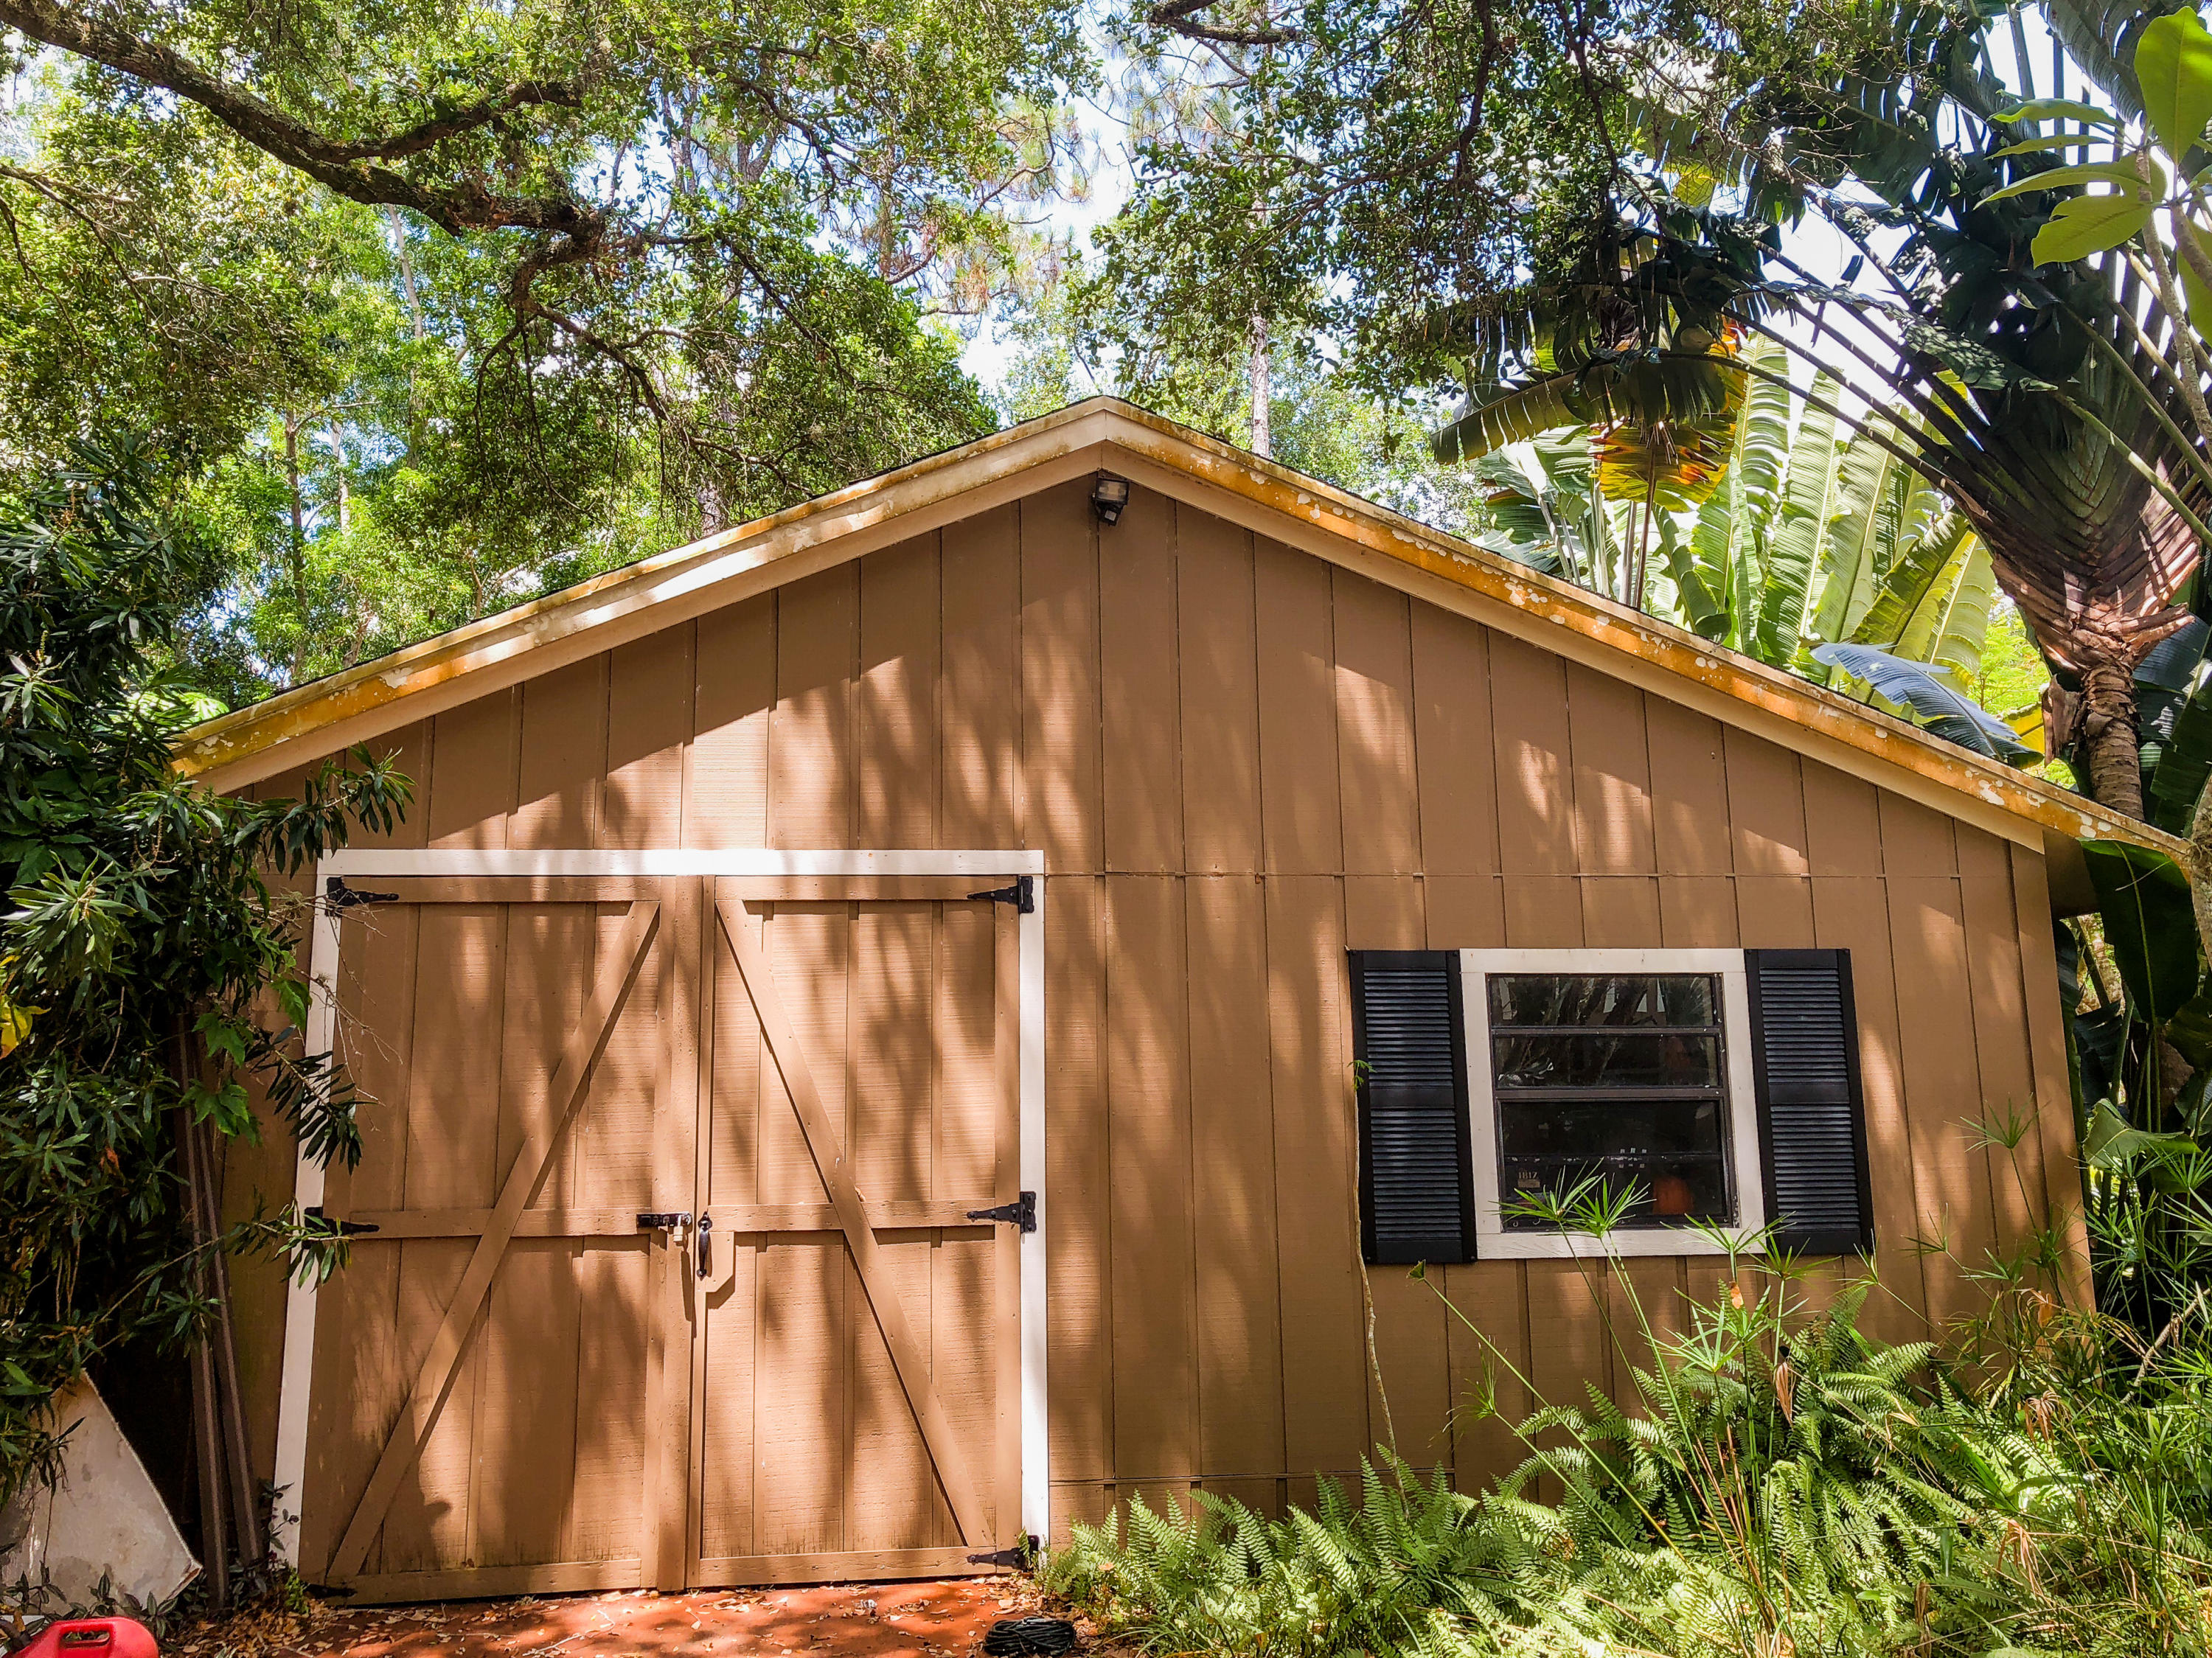 PALM BEACH LITTLE RANCHES NO 2UNREC ON AM 46  TR 30-C AS IN OR9925P880